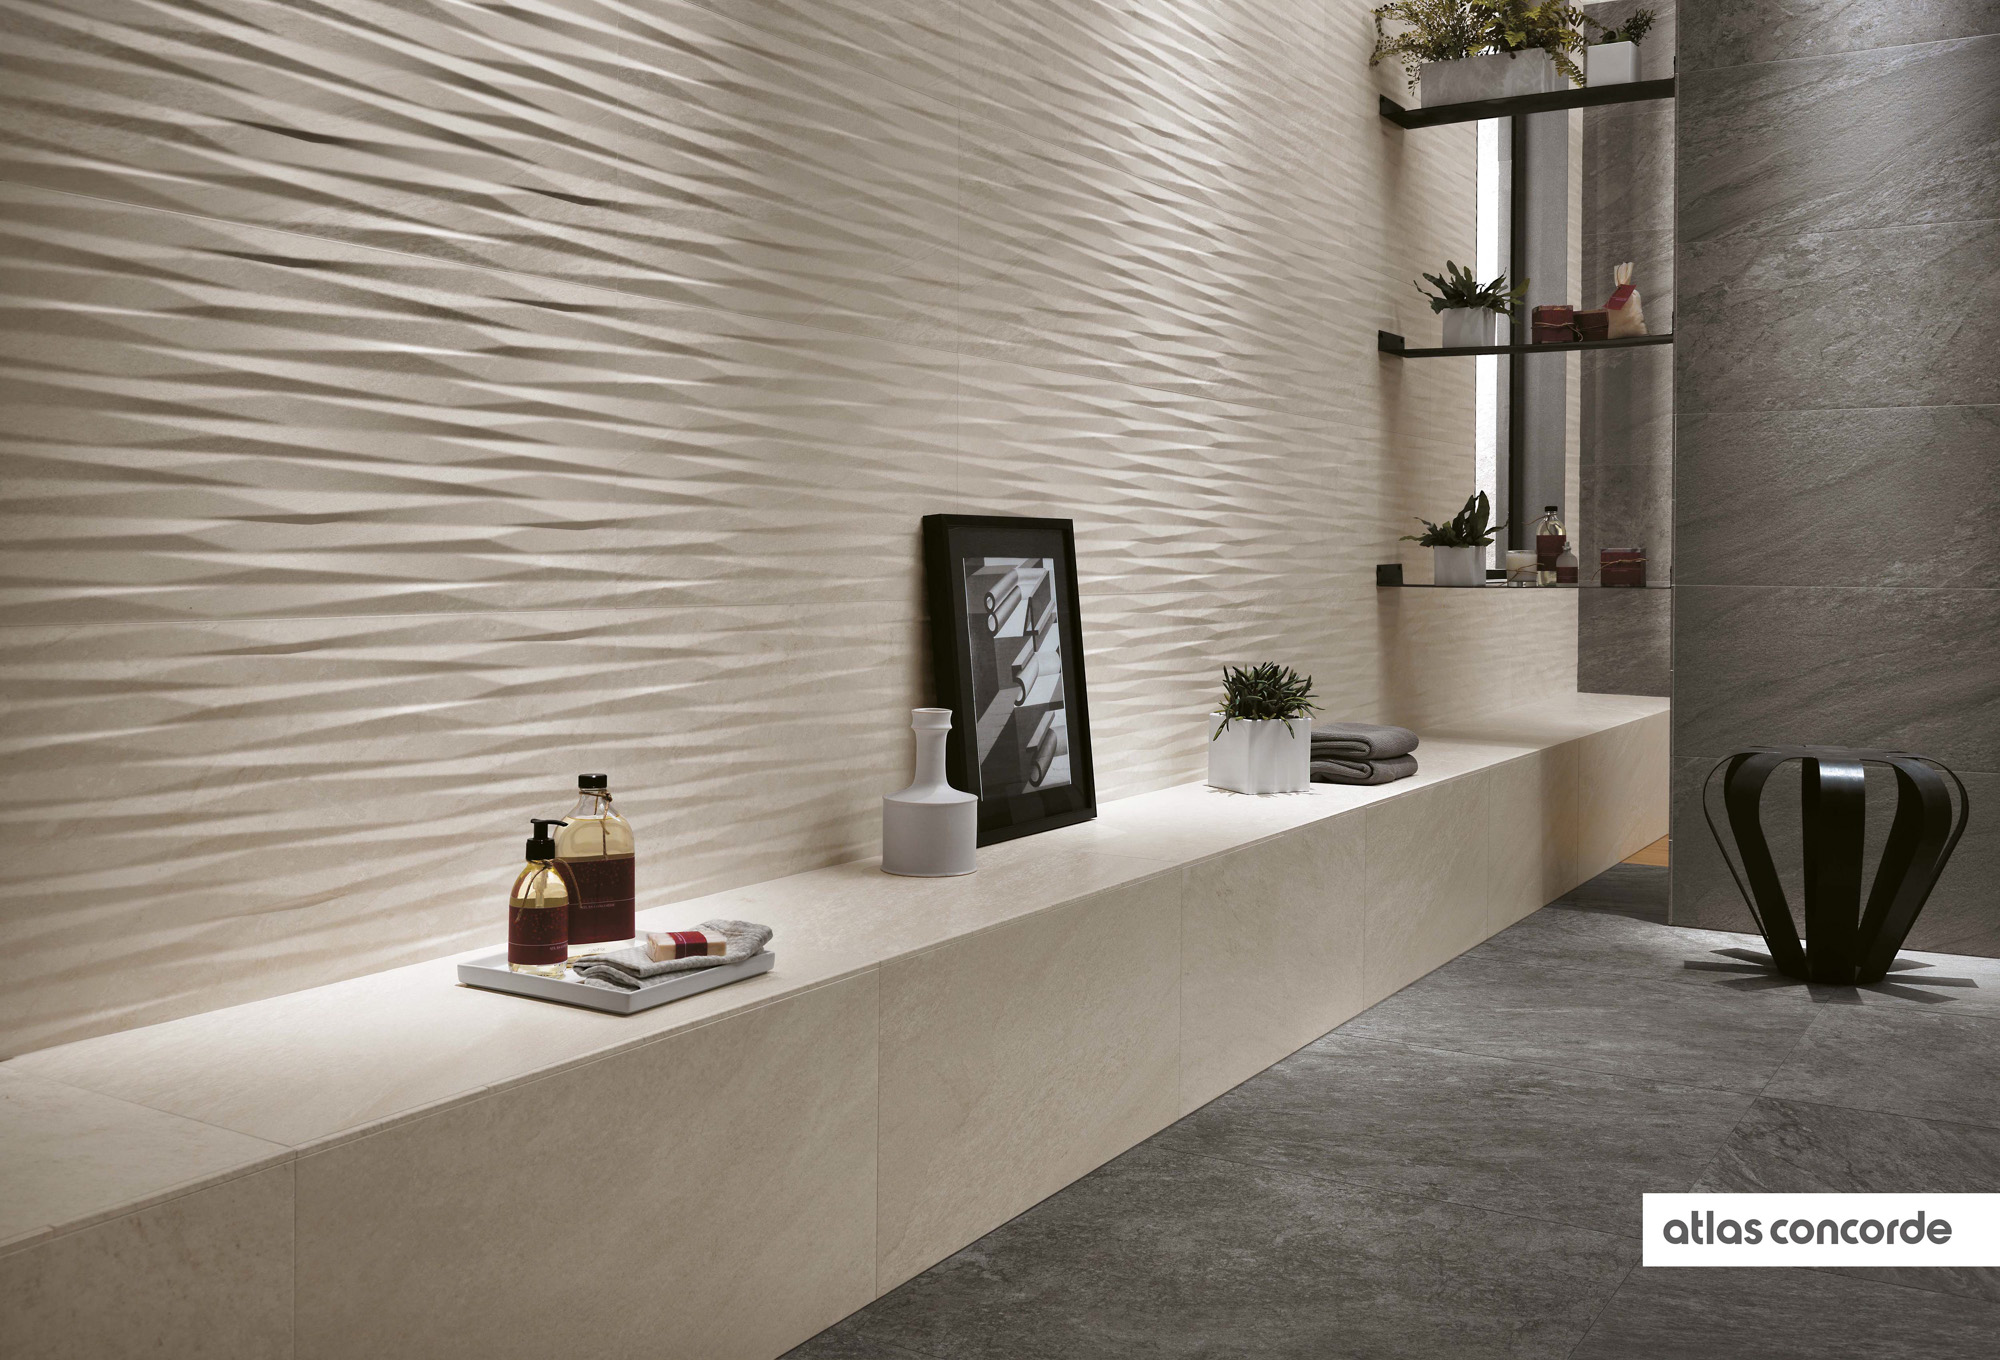 Atlas Concorde Brave Ceramic Wall Tile